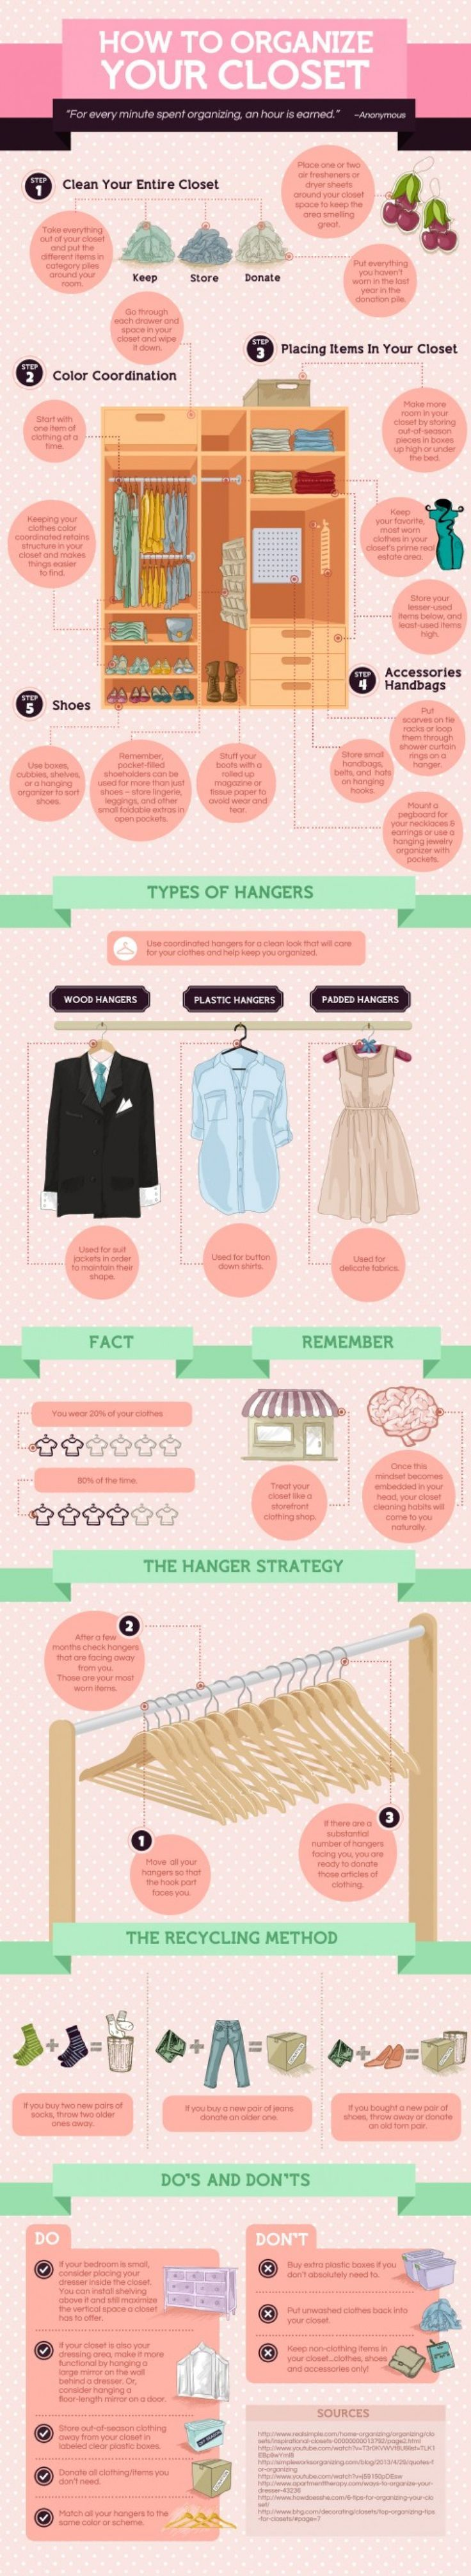 How to organize and clean out your closet to make it easy to find things and only keep what is really needed. Great home organization ideas. For more home tips, check us out at: http://www.everythingsahm.net/